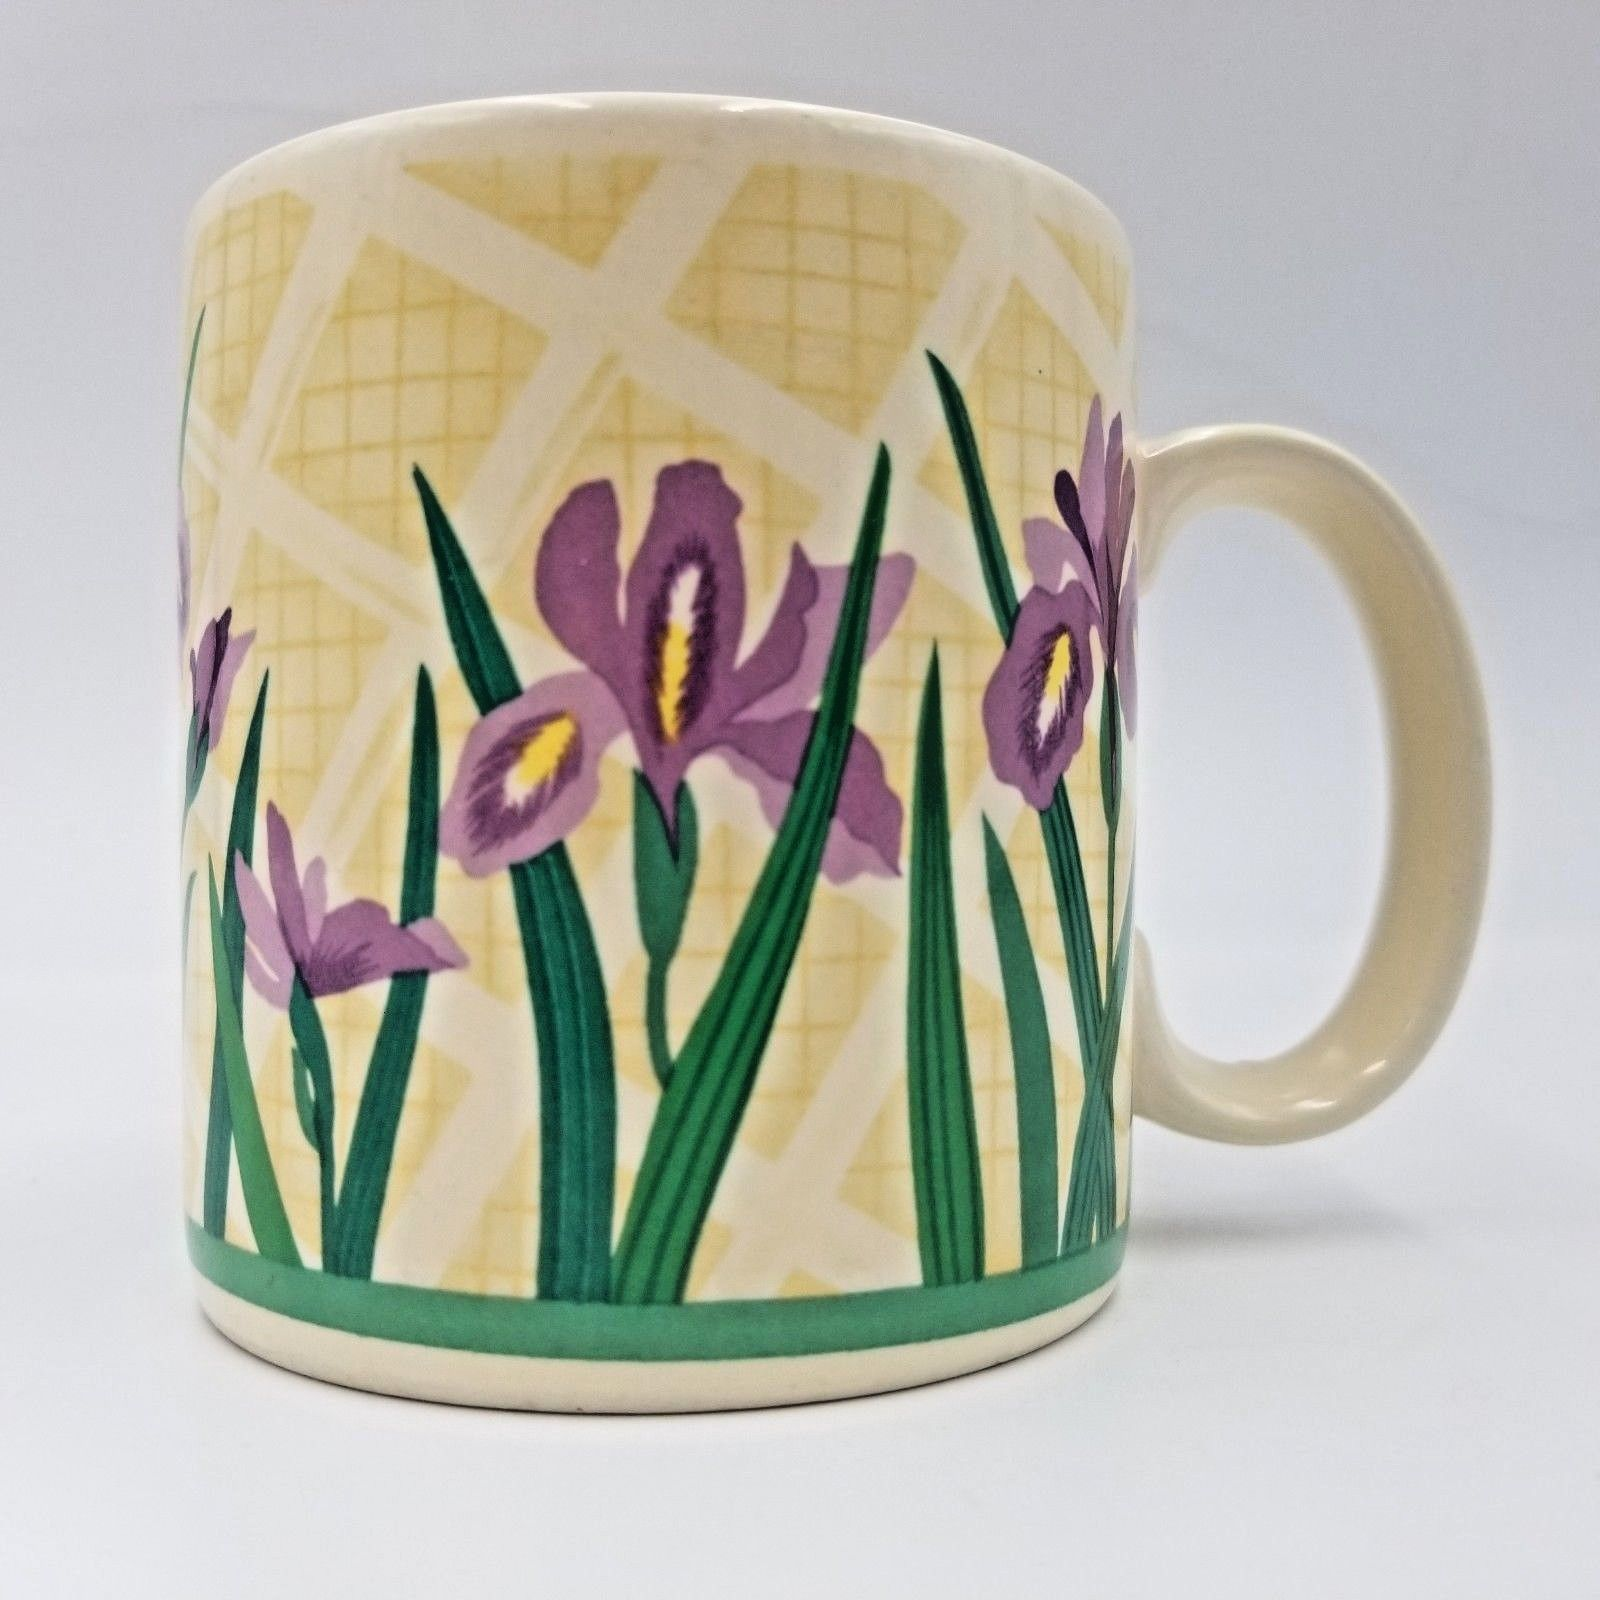 Primary image for Purple Iris Flowers on Off White Coffee Mug Tea Cup by Russ Berrie Company 8755